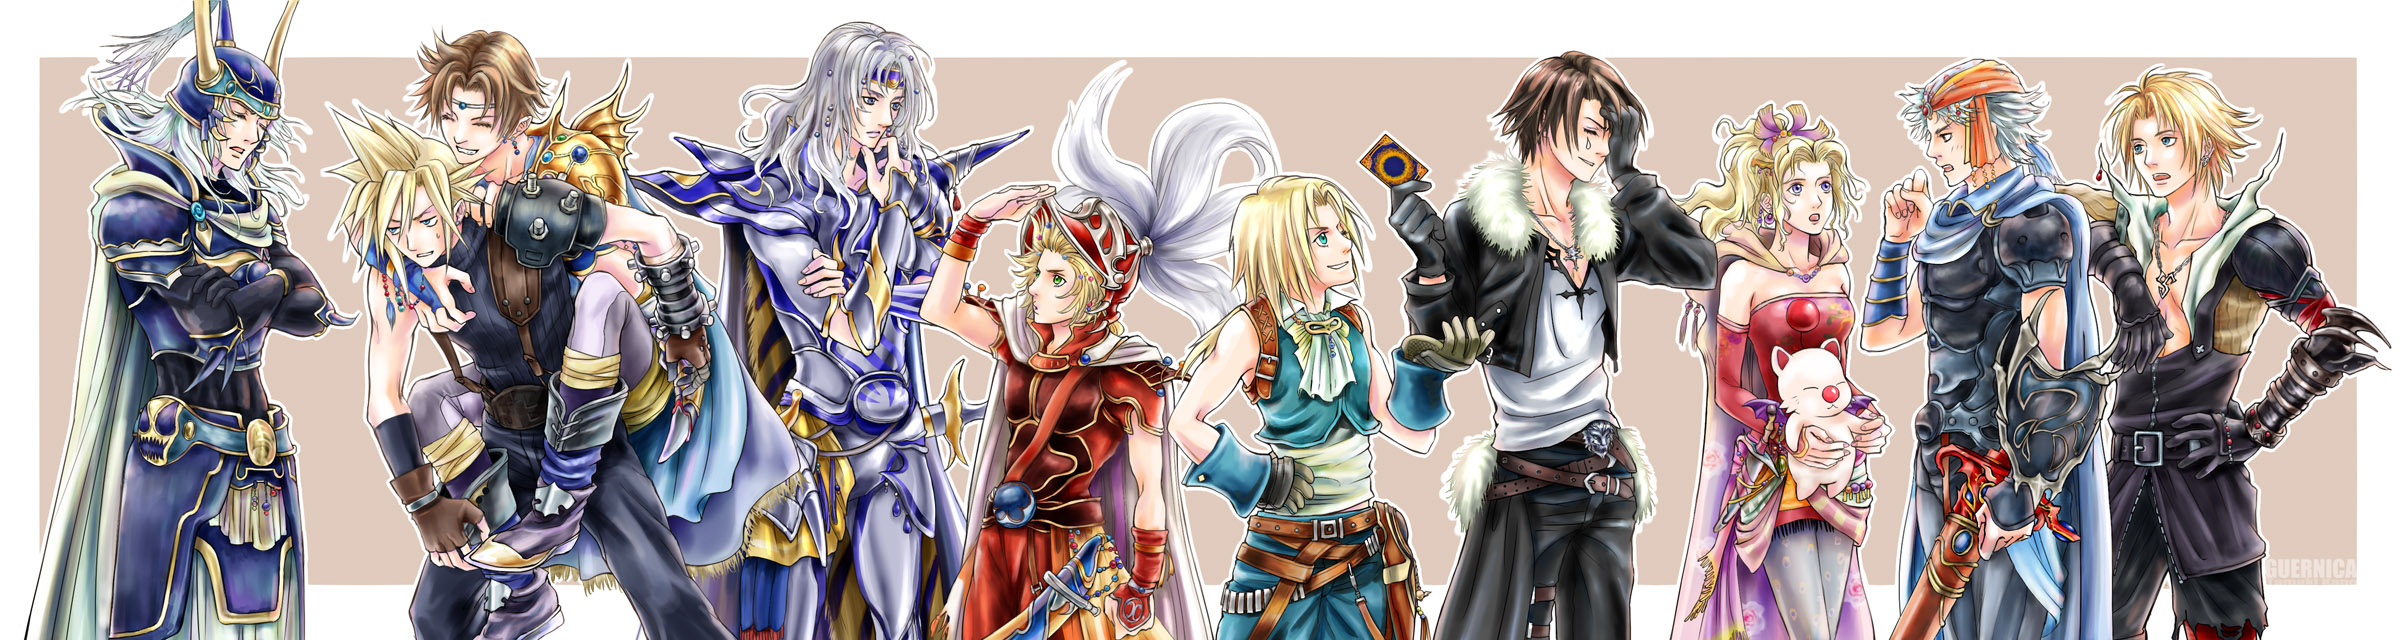 Dissidia Cosmos Heroes by hummingbird712